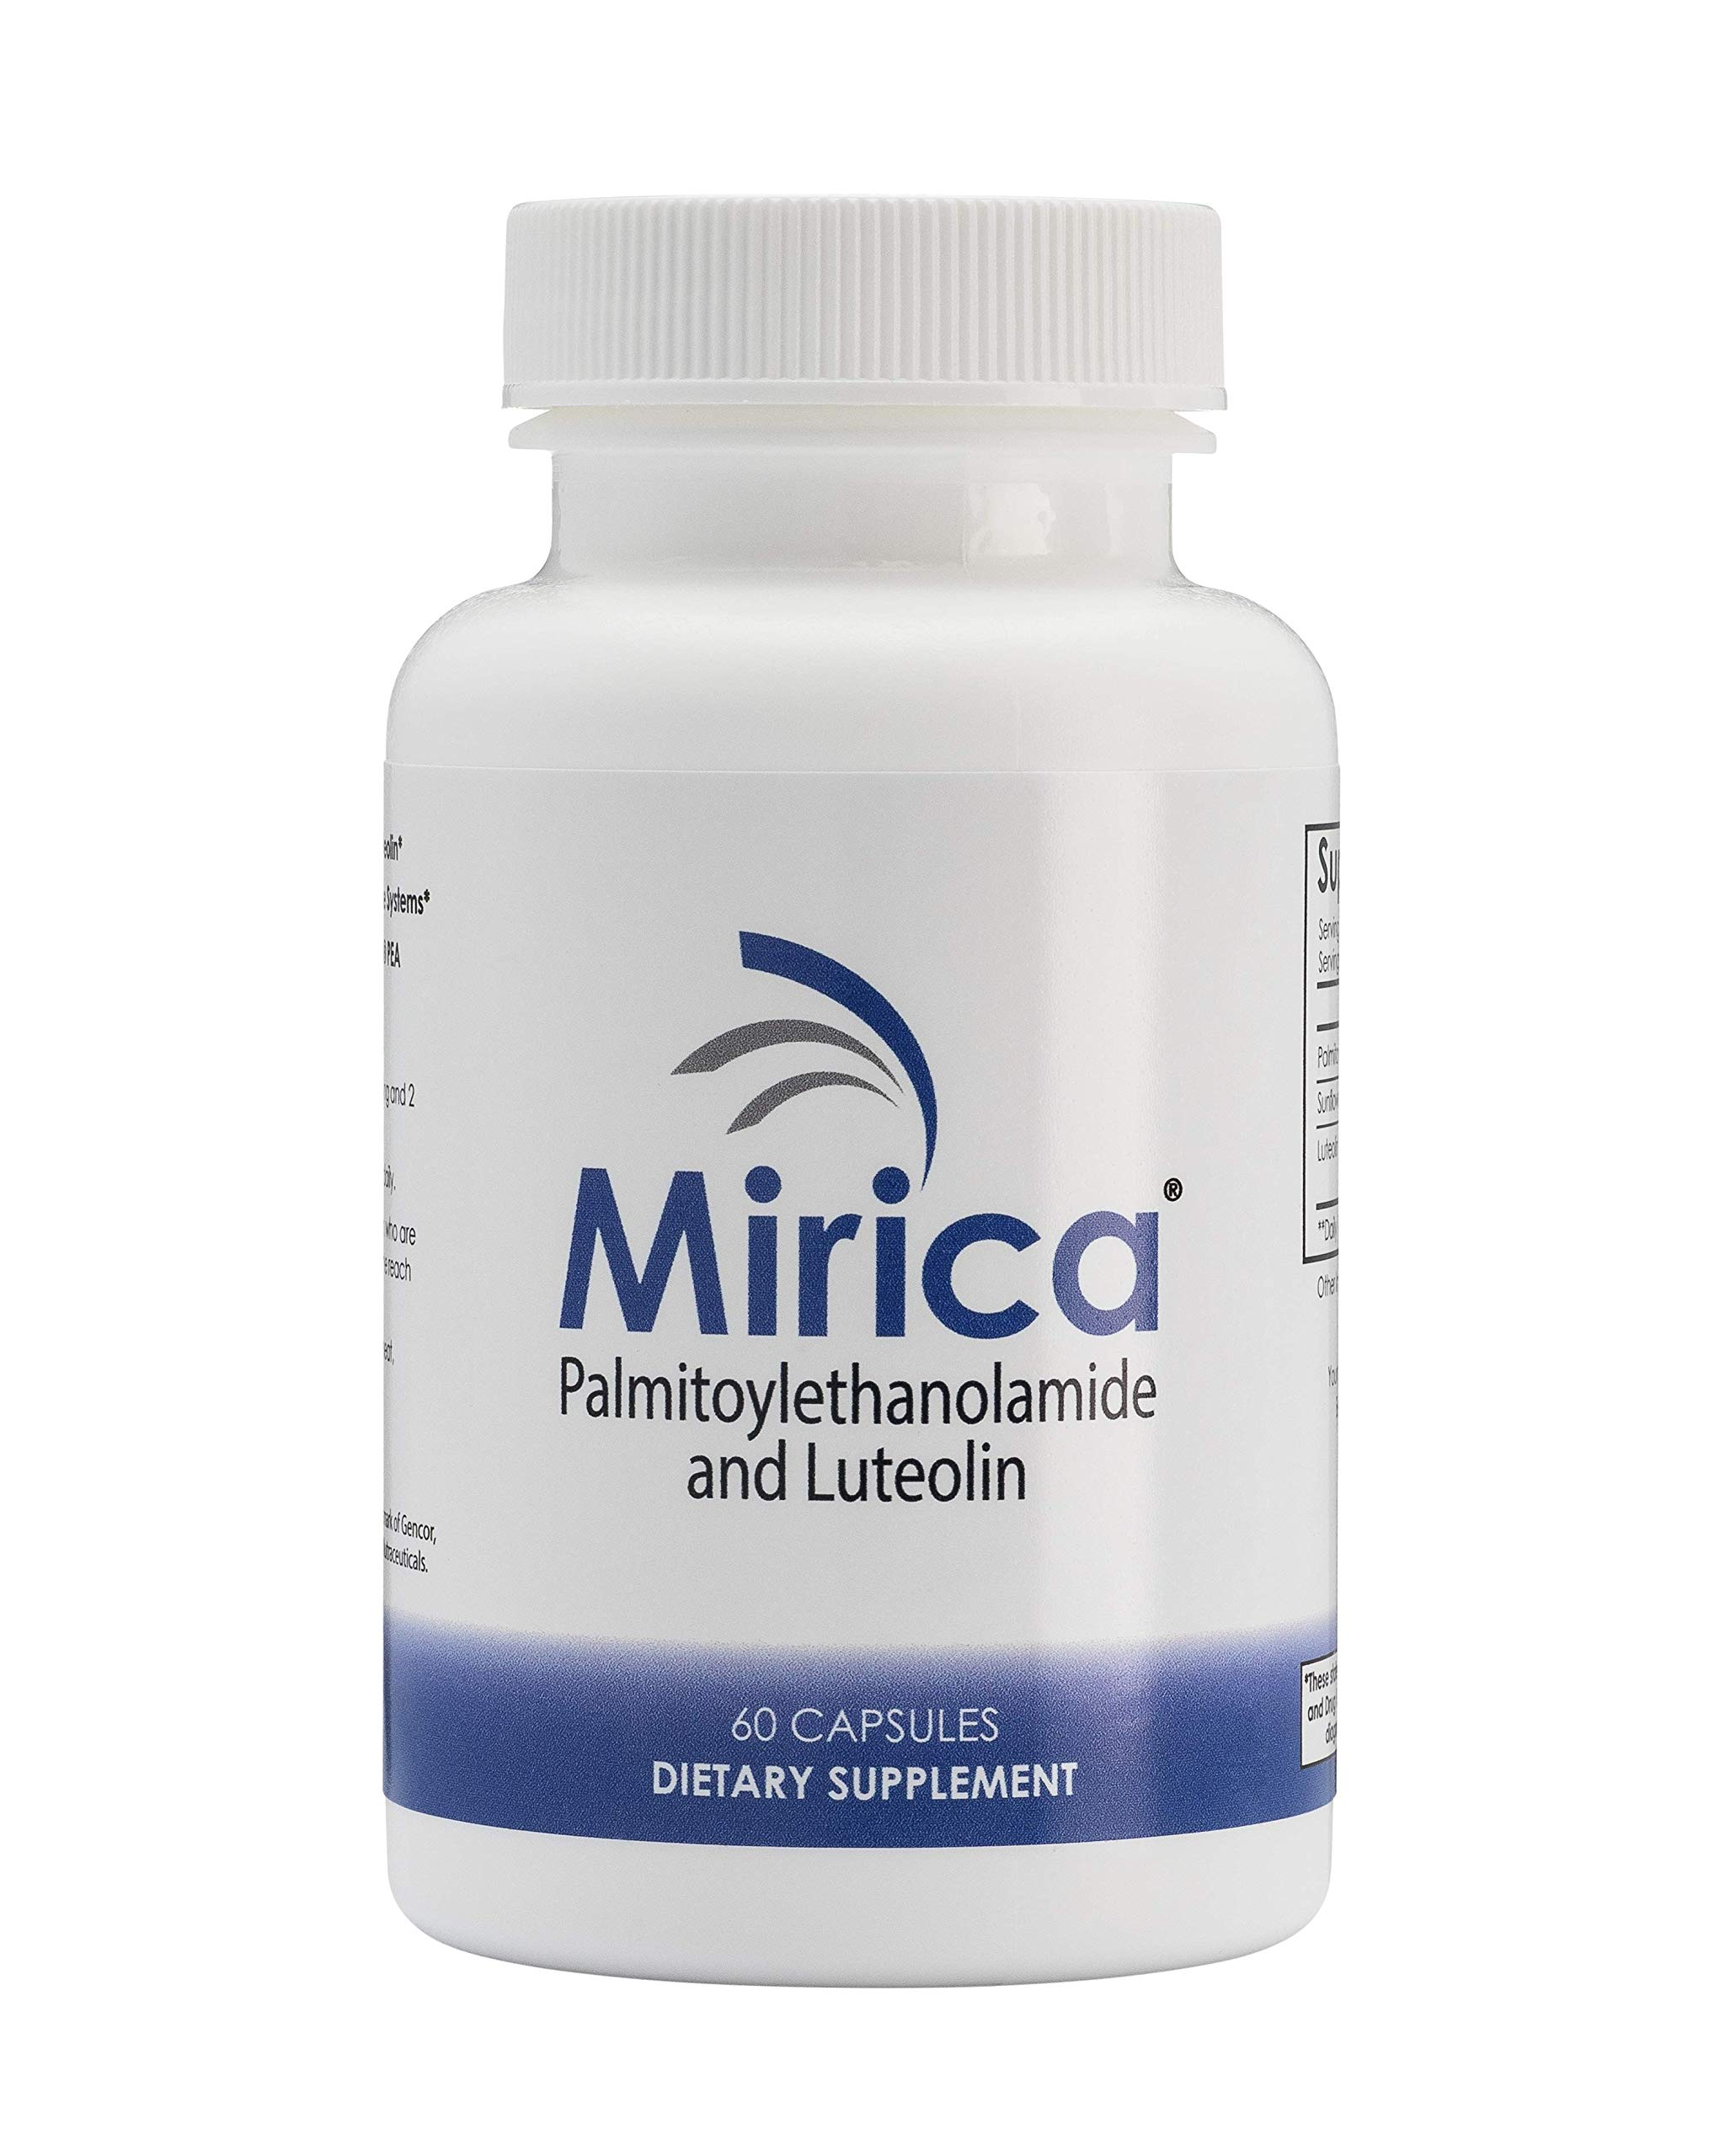 Mirica® - Pea (Palmitoylethanolamide) and Luteolin - Immune & Nervous System Support - Pain Relief - Anti-Inflammatory Supplement - 60 ct